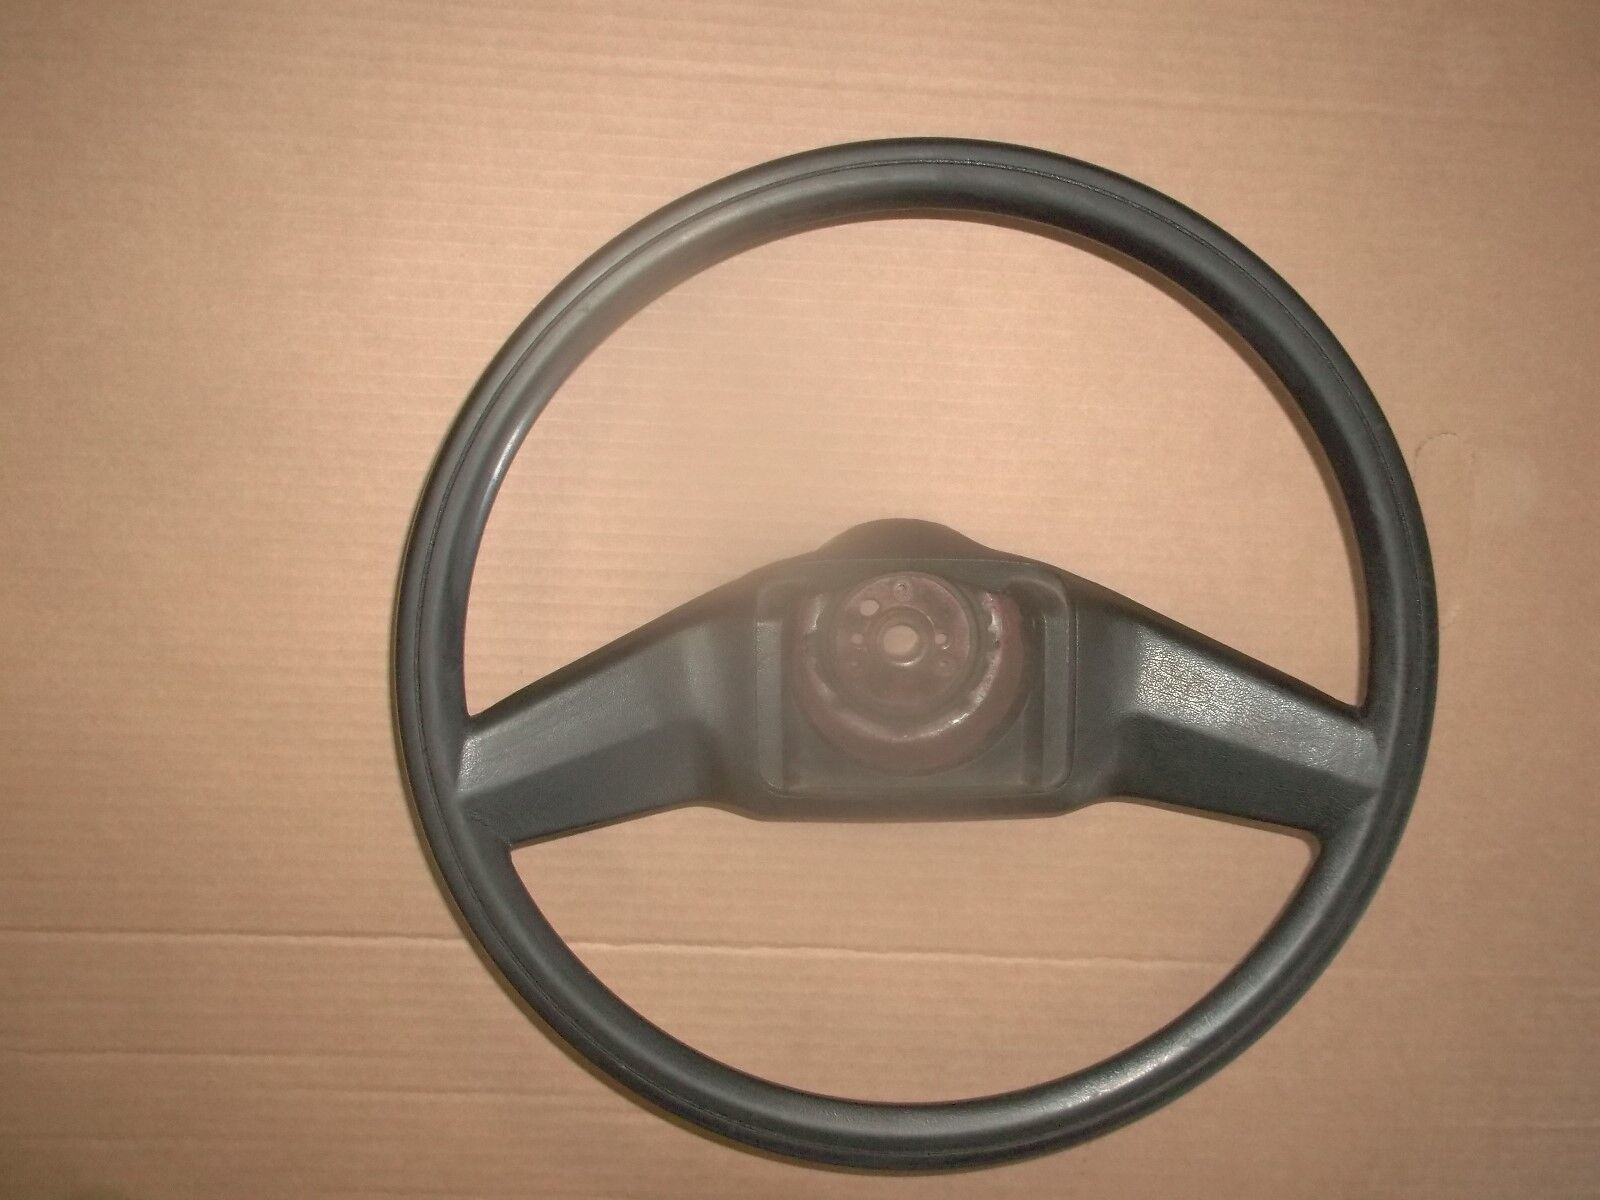 Used 1985 Chevrolet Blazer Steering Wheels And Horns For Sale 1955 Ford F100 Wheel Black Chevy Truck Suburban K5 Pickup 80s 1981 1983 1987 1988